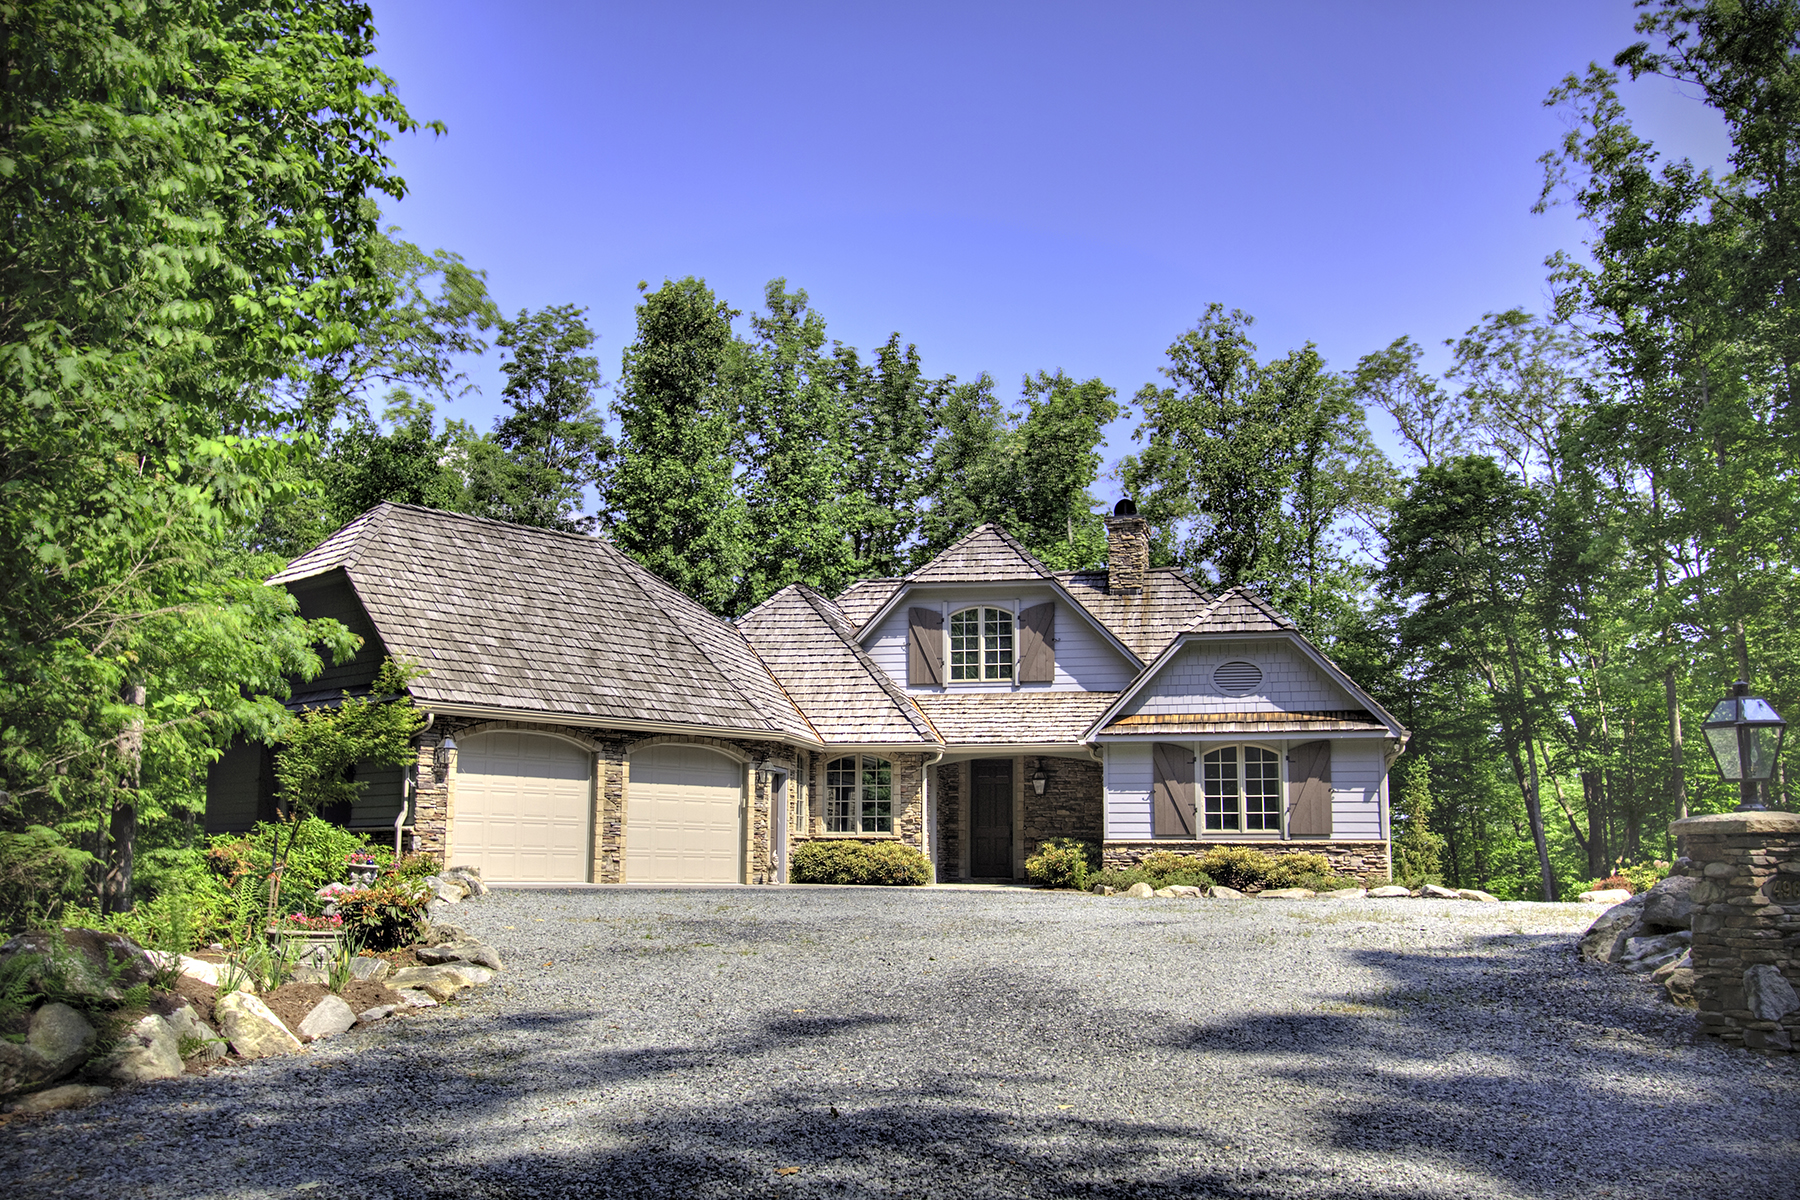 Single Family Home for Sale at BOONE - TWIN RIVERS 496 Ontario Ridge Boone, North Carolina, 28607 United States